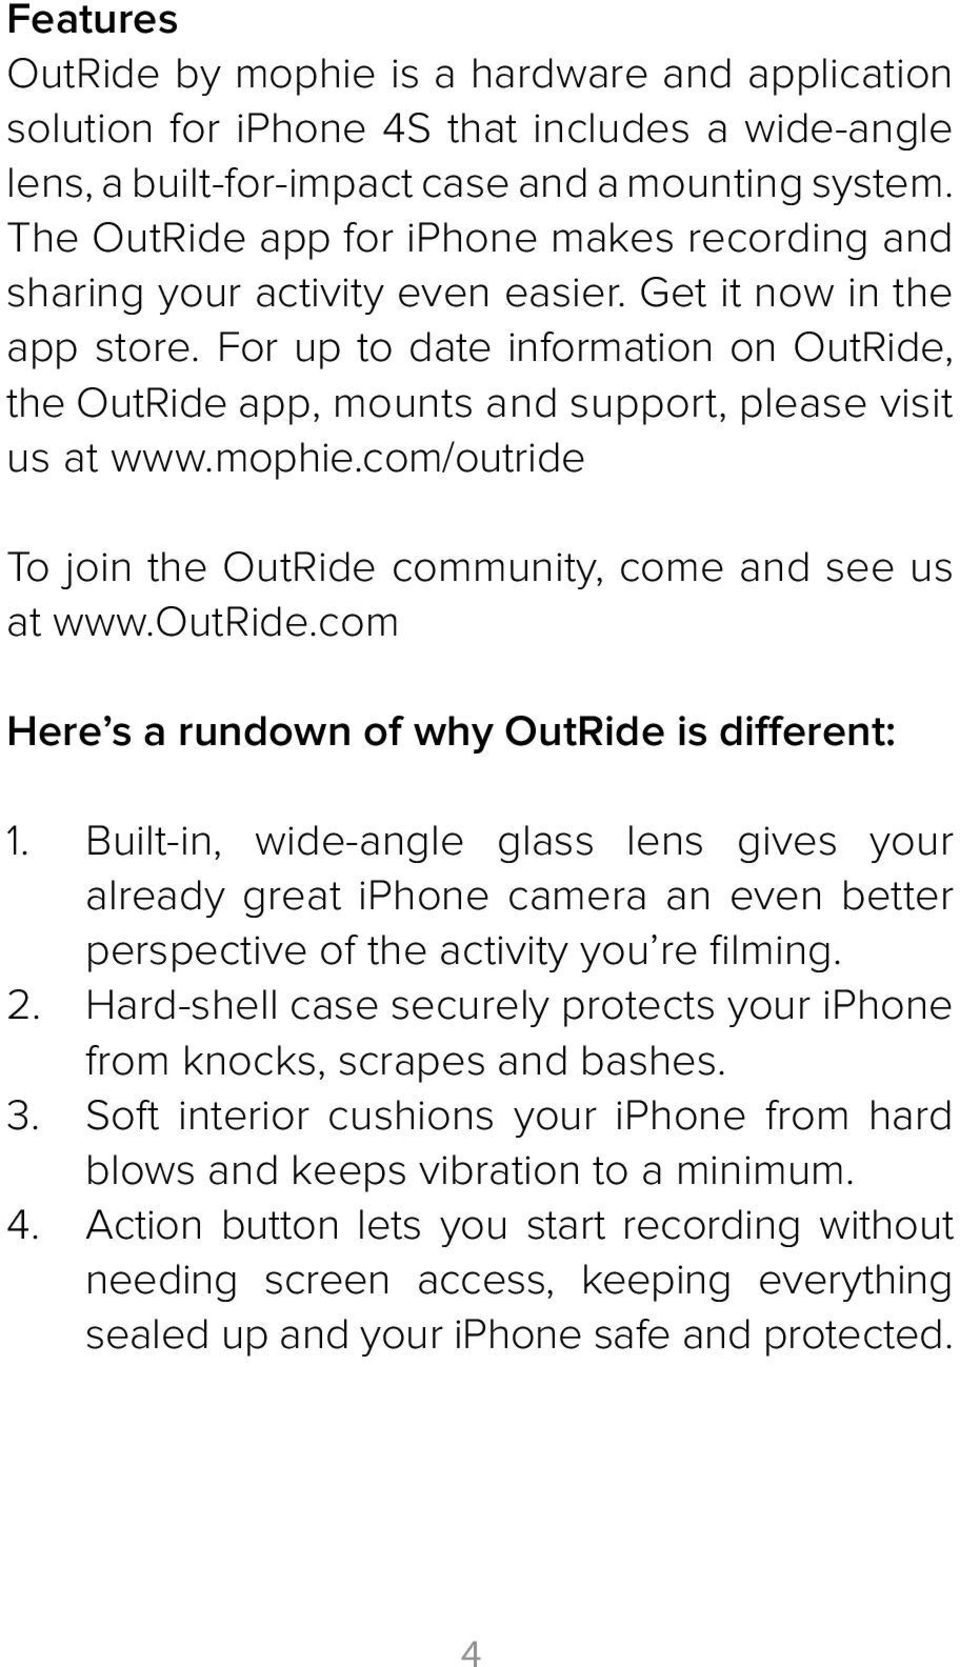 For up to date information on OutRide, the OutRide app, mounts and support, please visit us at www.mophie.com/outride To join the OutRide community, come and see us at www.outride.com Here s a rundown of why OutRide is different: 1.